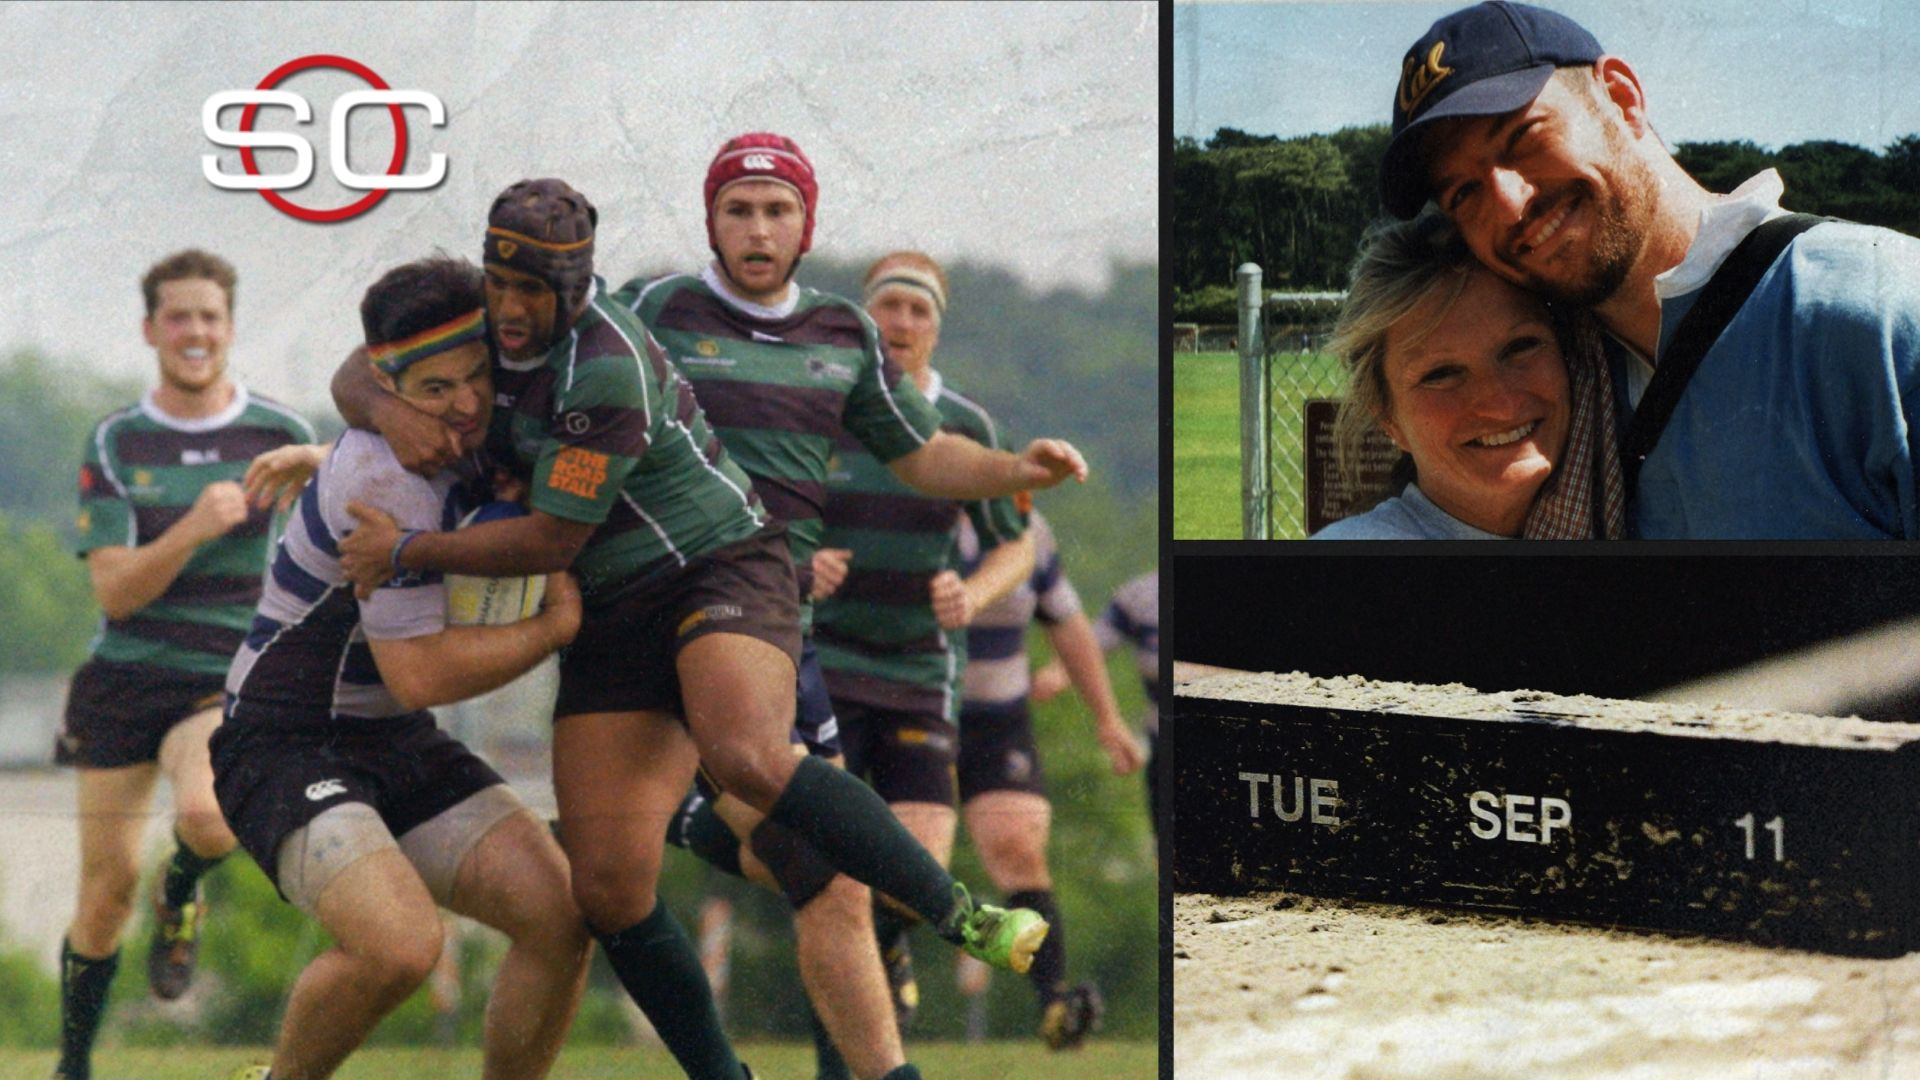 SC Featured: A 9/11 hero's lasting impact on rugby